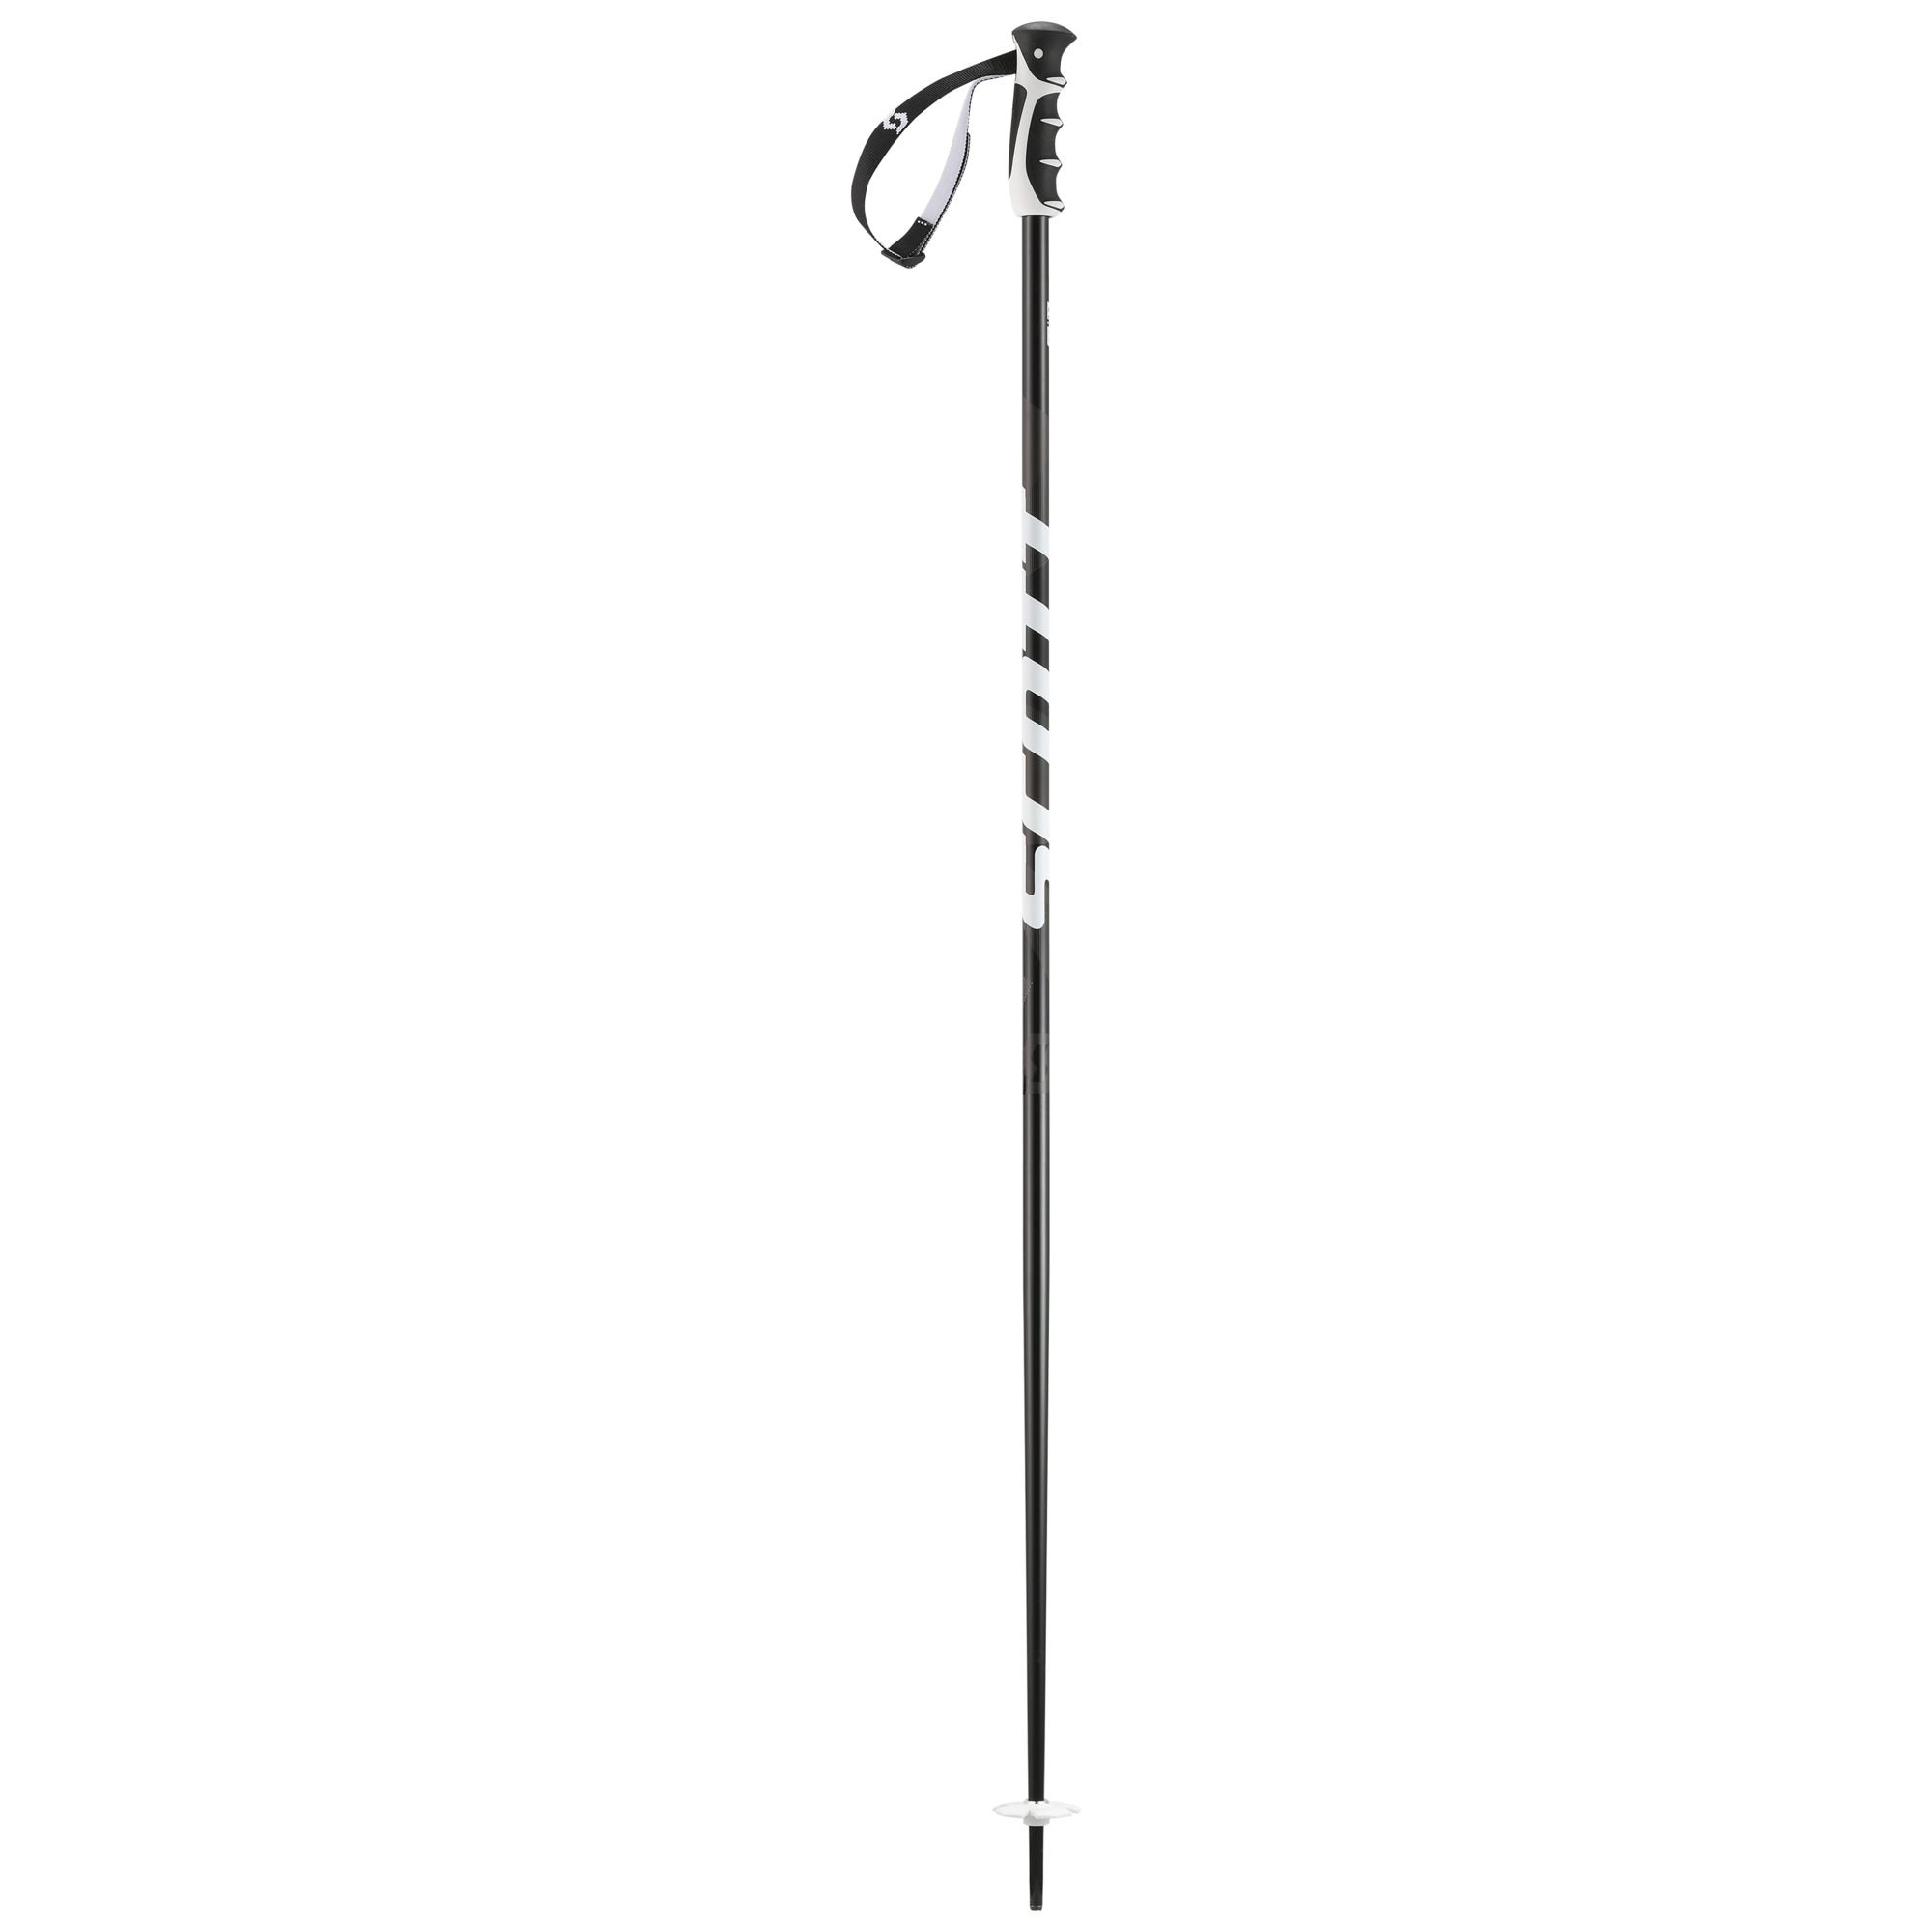 SCOTT Punisher Ski Pole